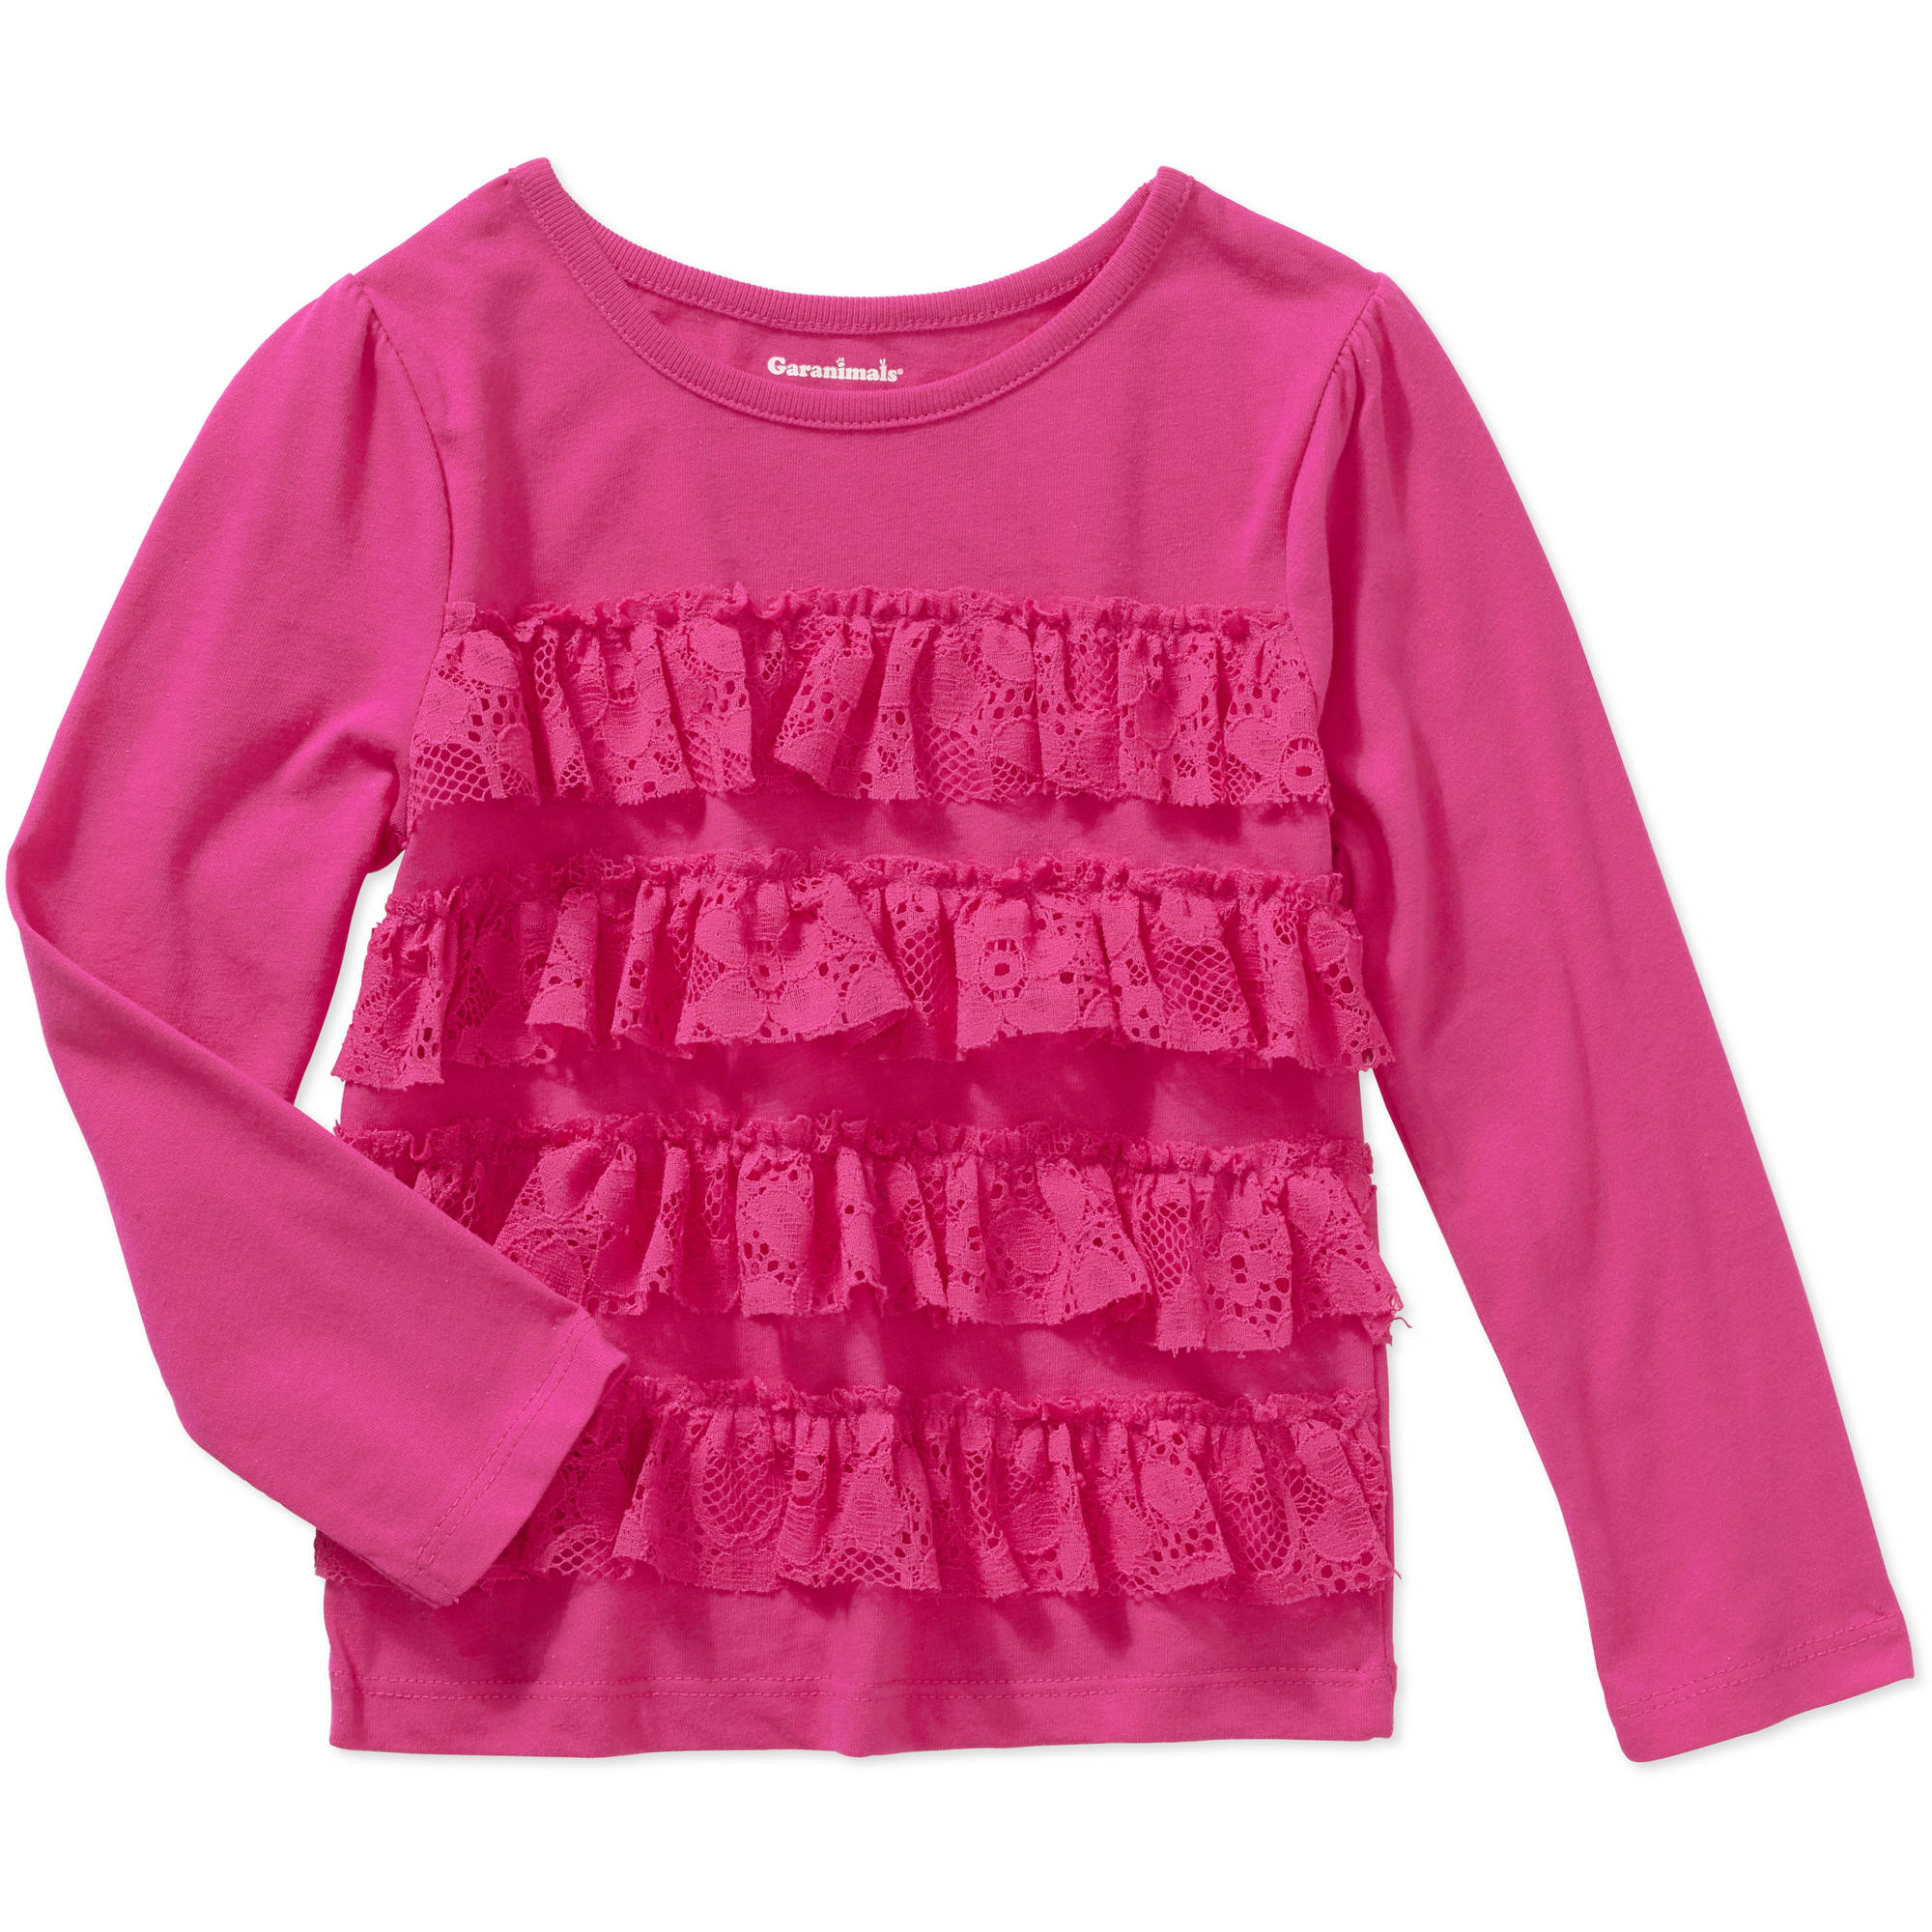 Garanimals Baby Toddler Girls' Long Sleeve Lace Tiered Tee